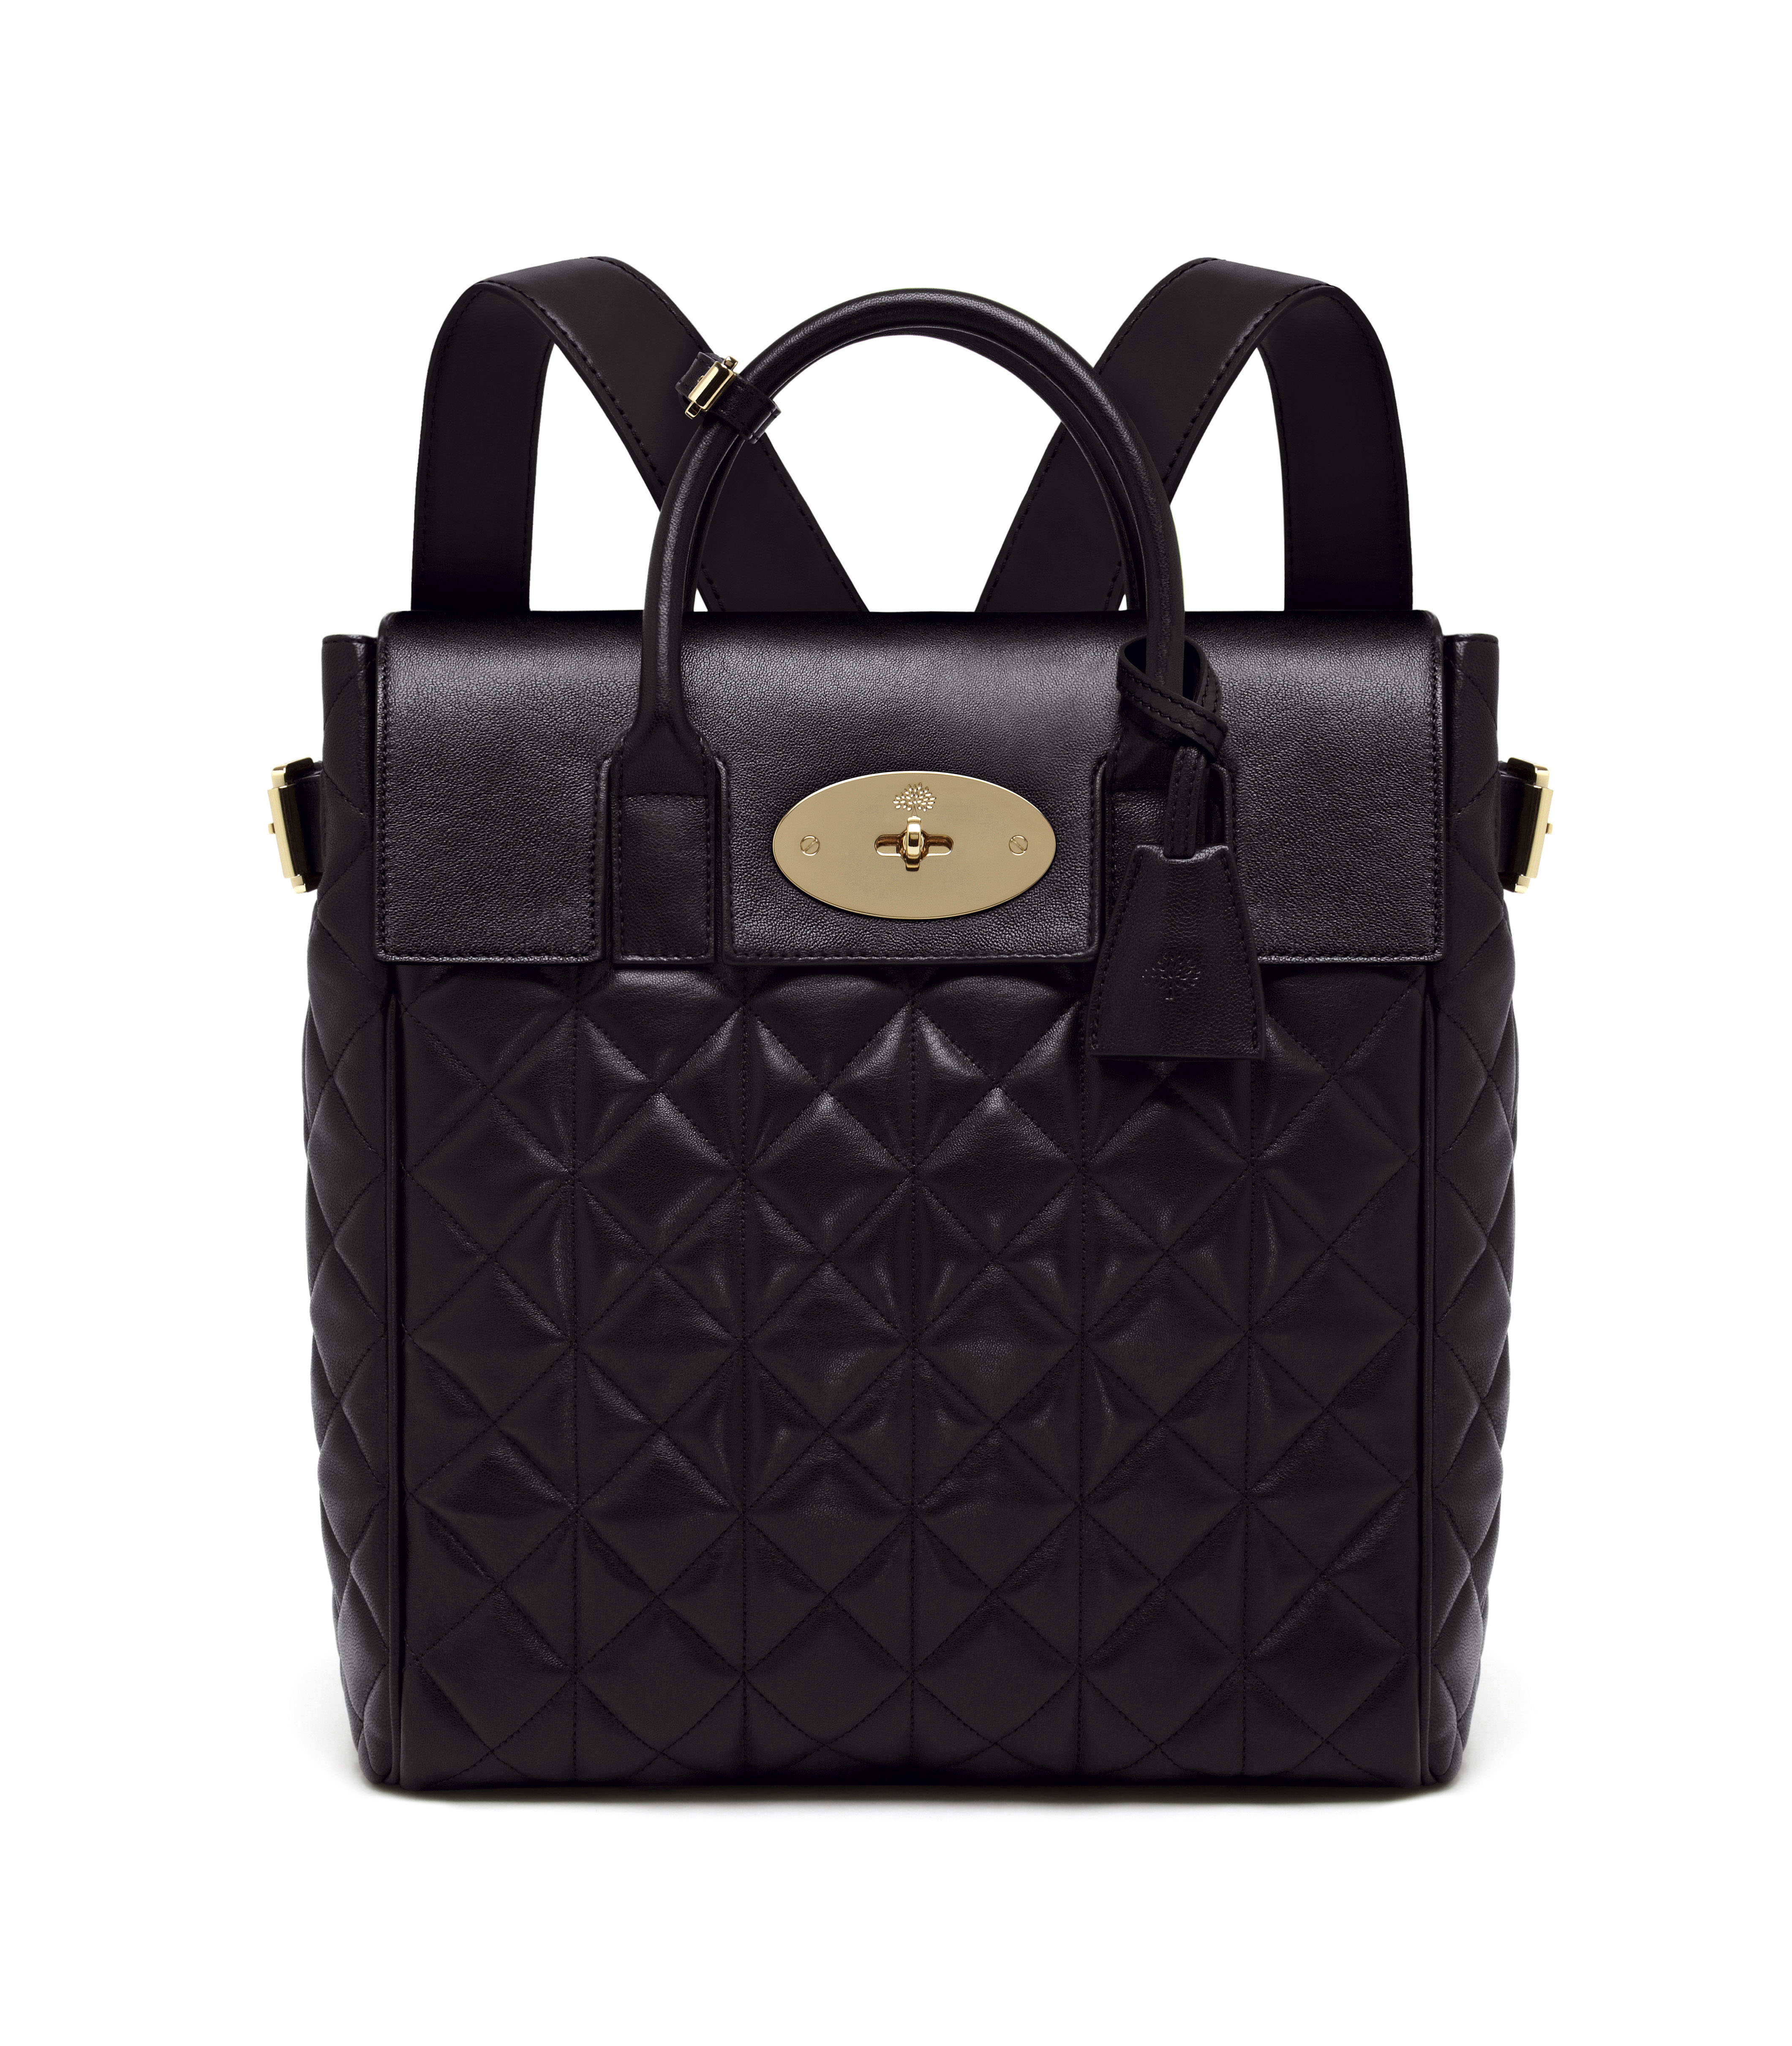 Large Cara Delevingne Bag in Black Quilted Nappa